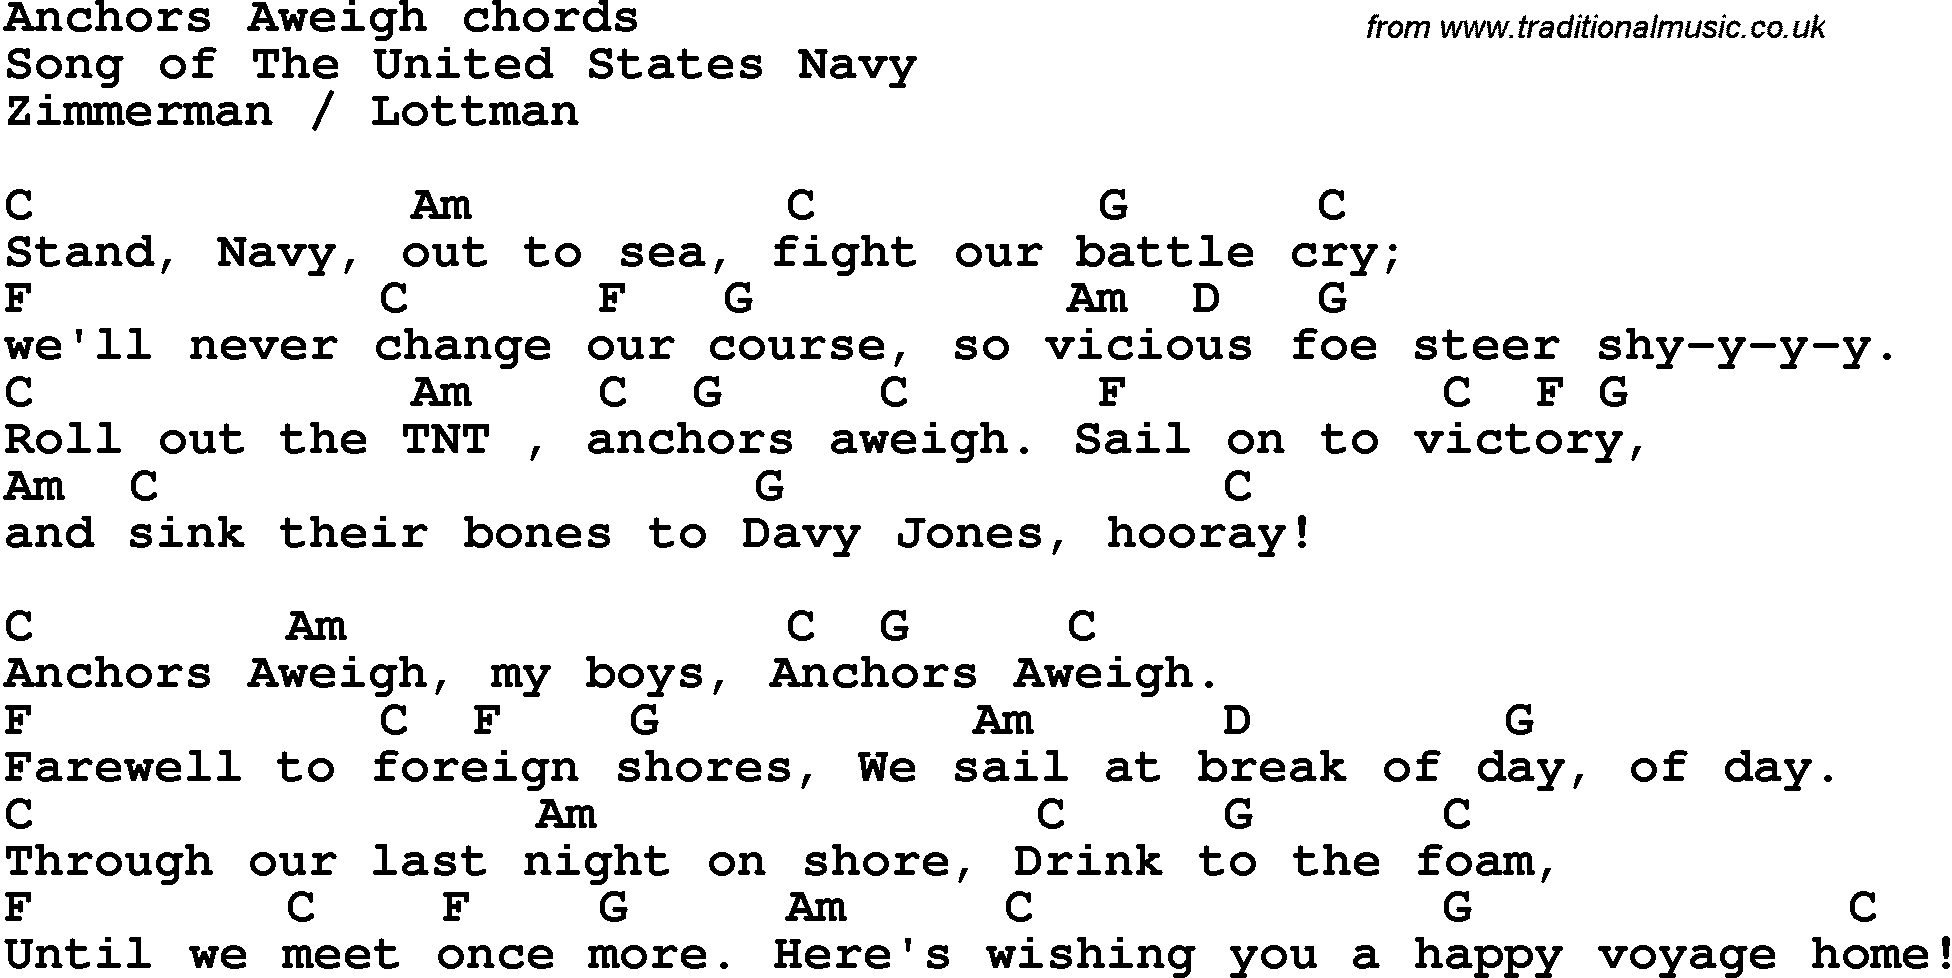 Song Lyrics With Guitar Chords For Anchors Aweigh